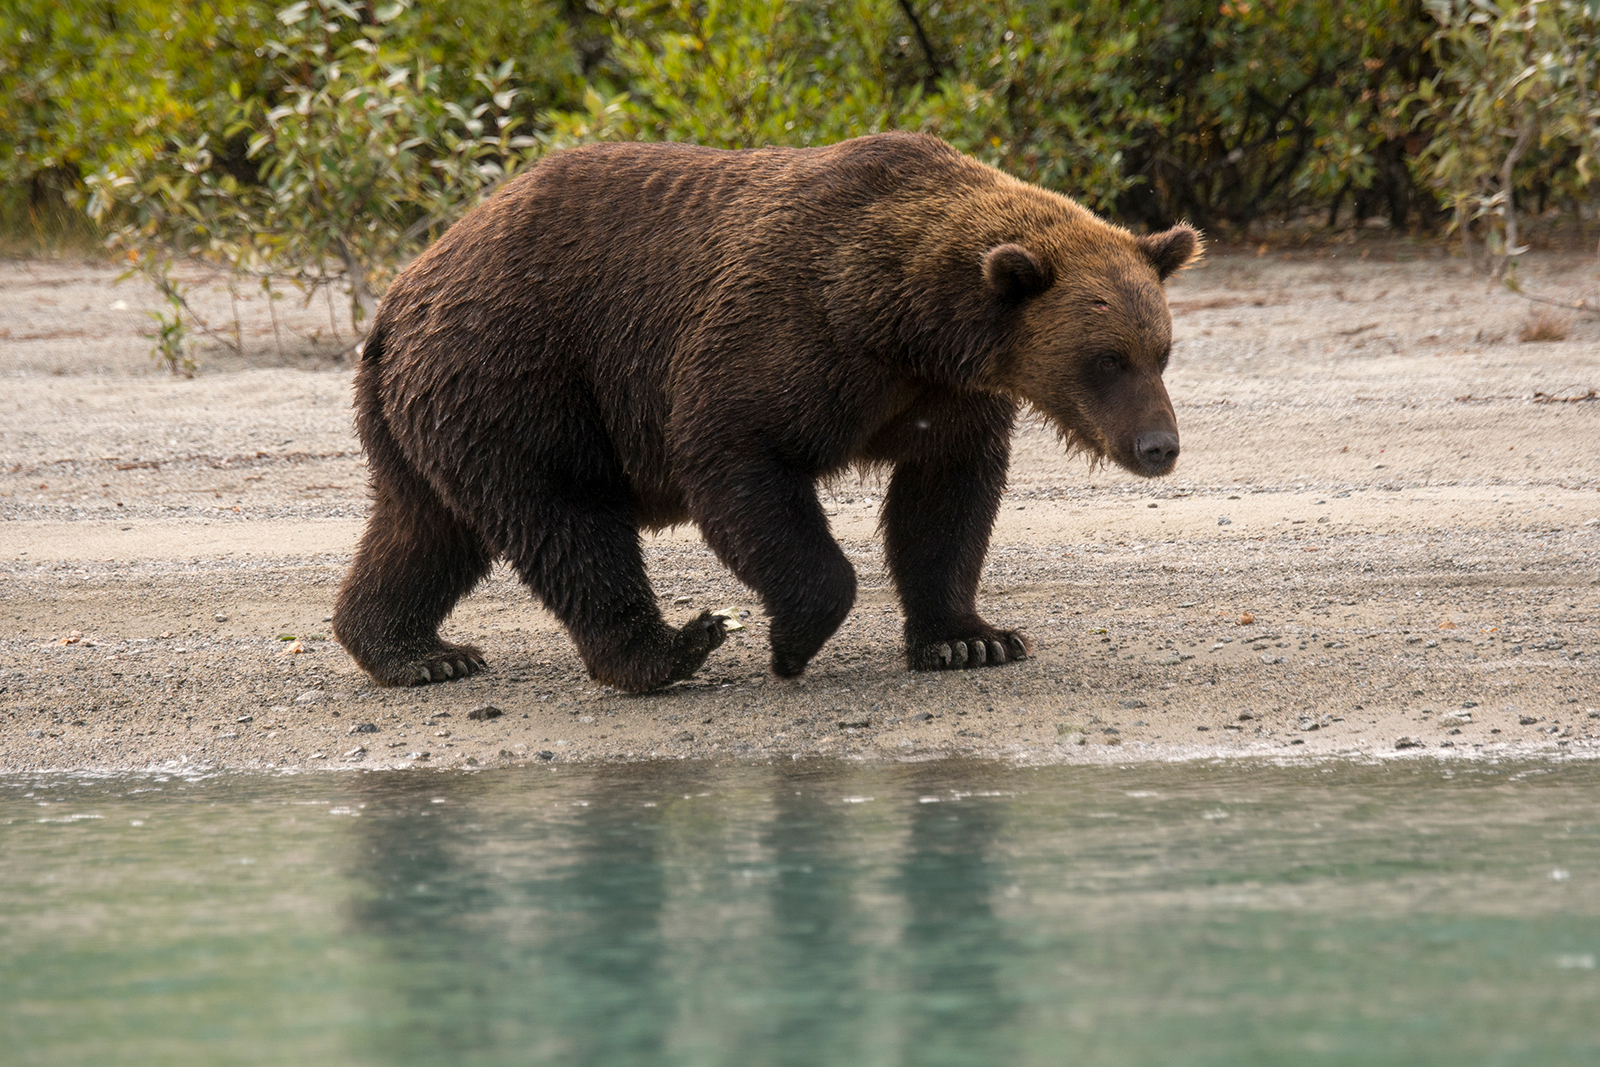 ALASKA, UNITED STATES - 2019/08/21: A Brown bear (Ursus arctos) is walking and looking for salmon on a beach along the shore of Lake Crescent in Lake Clark National Park and Preserve, Alaska, USA. (Photo by Wolfgang Kaehler/LightRocket via Getty Images)